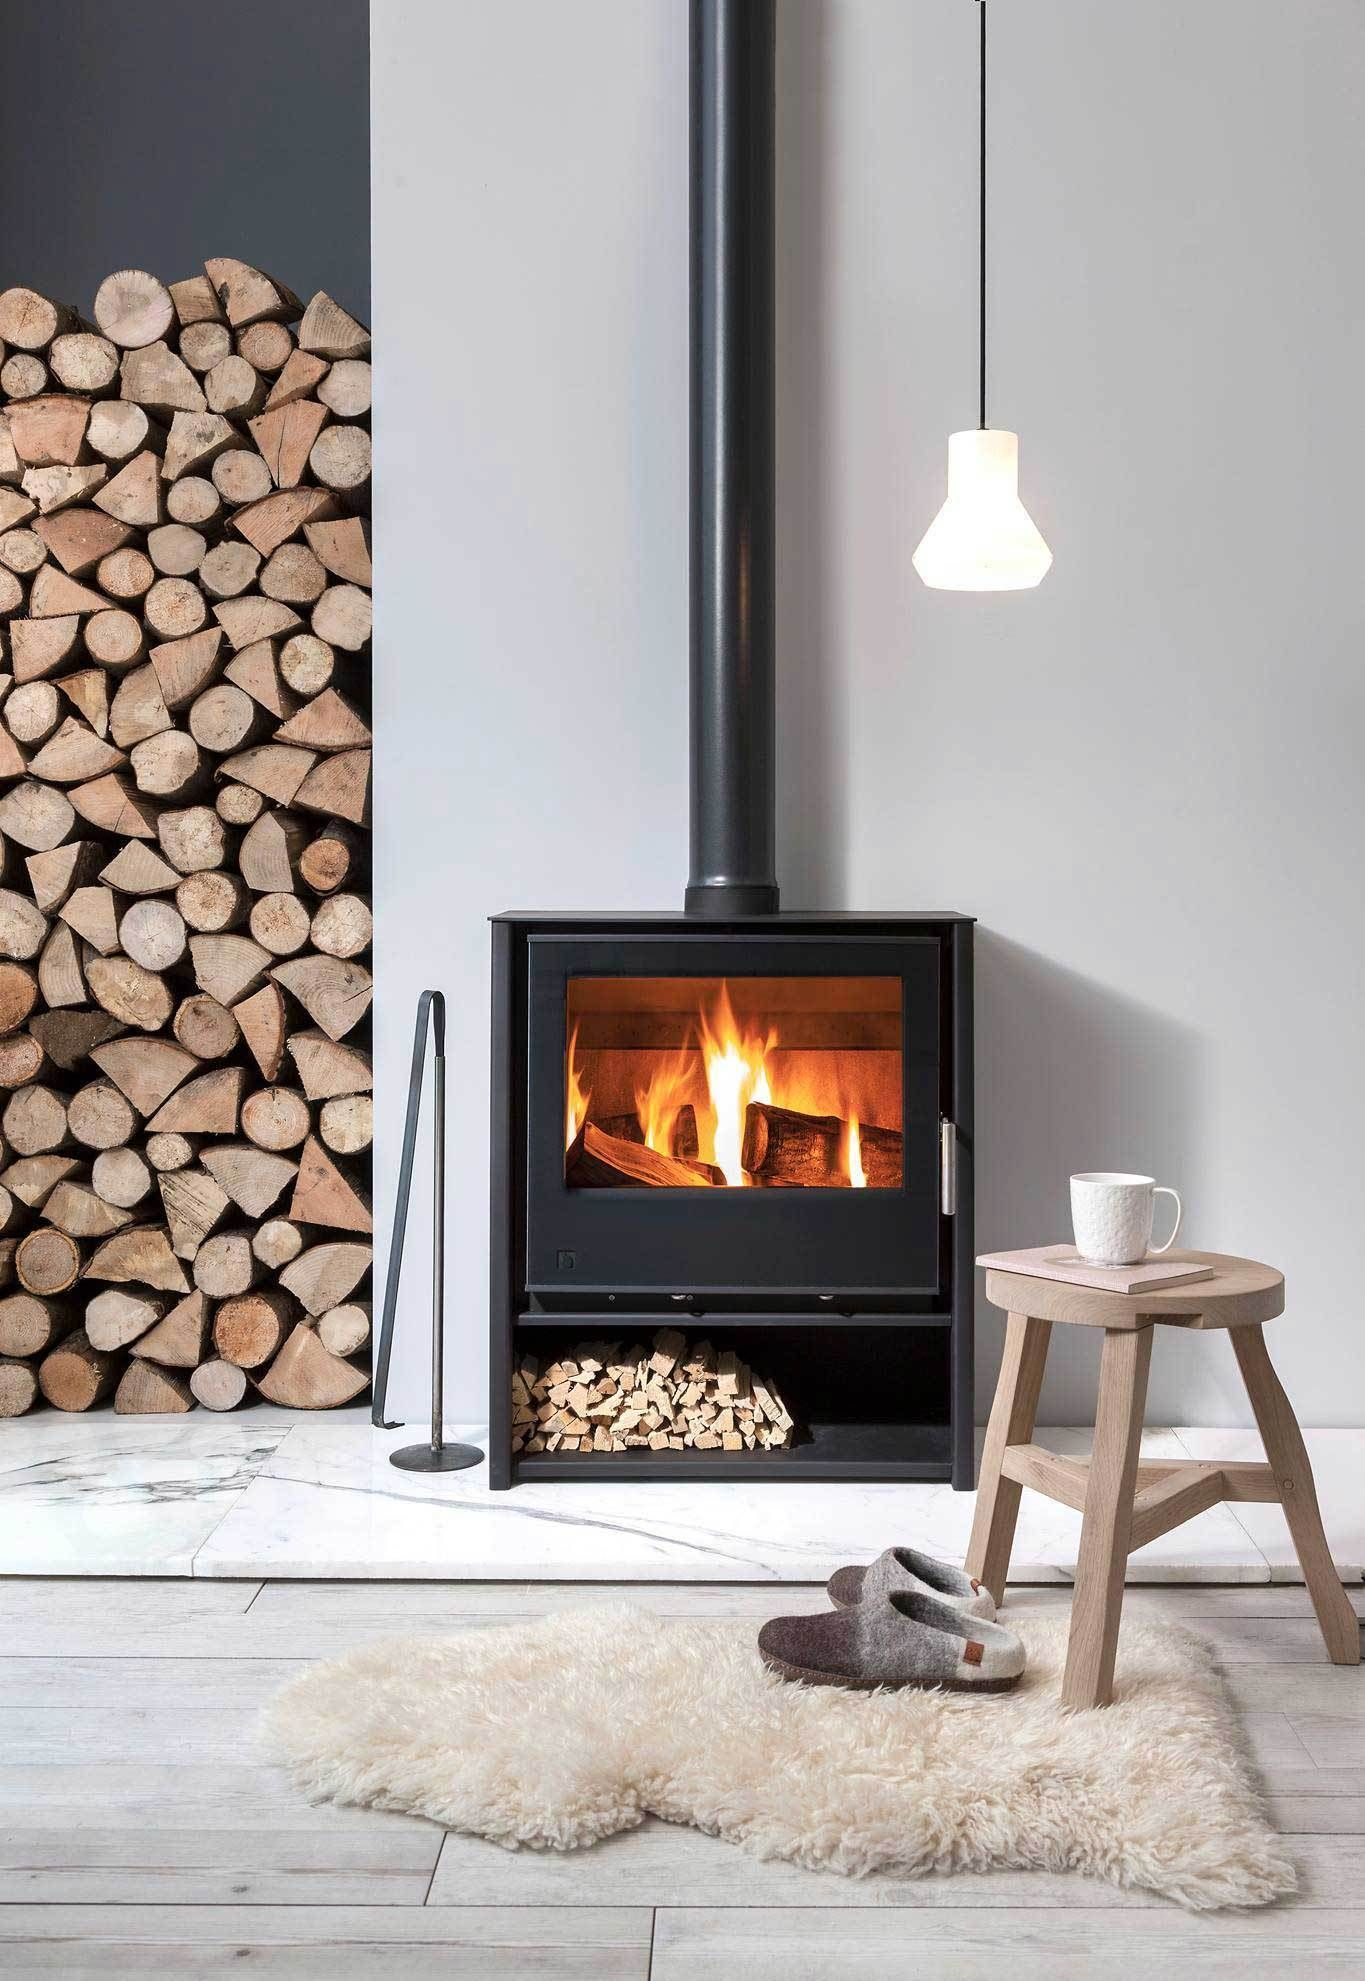 A Guide To Choosing And Installing A Wood Burning Stove These Four Wa Contemporary Wood Burning Stoves Freestanding Fireplace Wood Burning Stoves Living Room